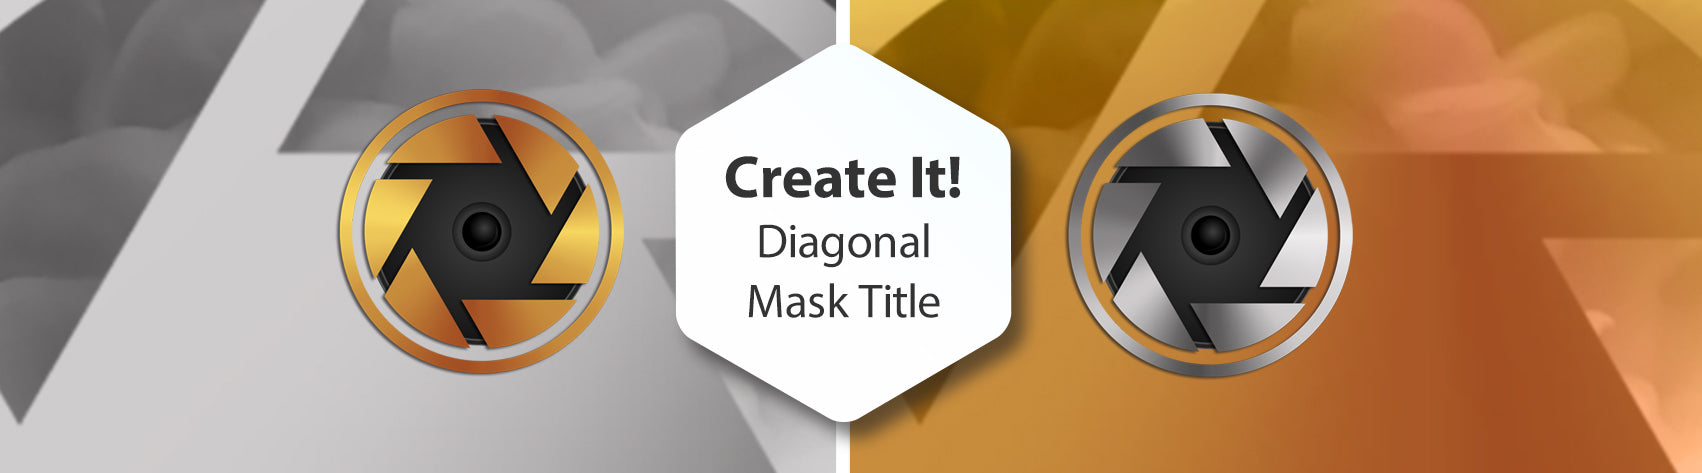 Create It! Diagonal Mask Title Slide